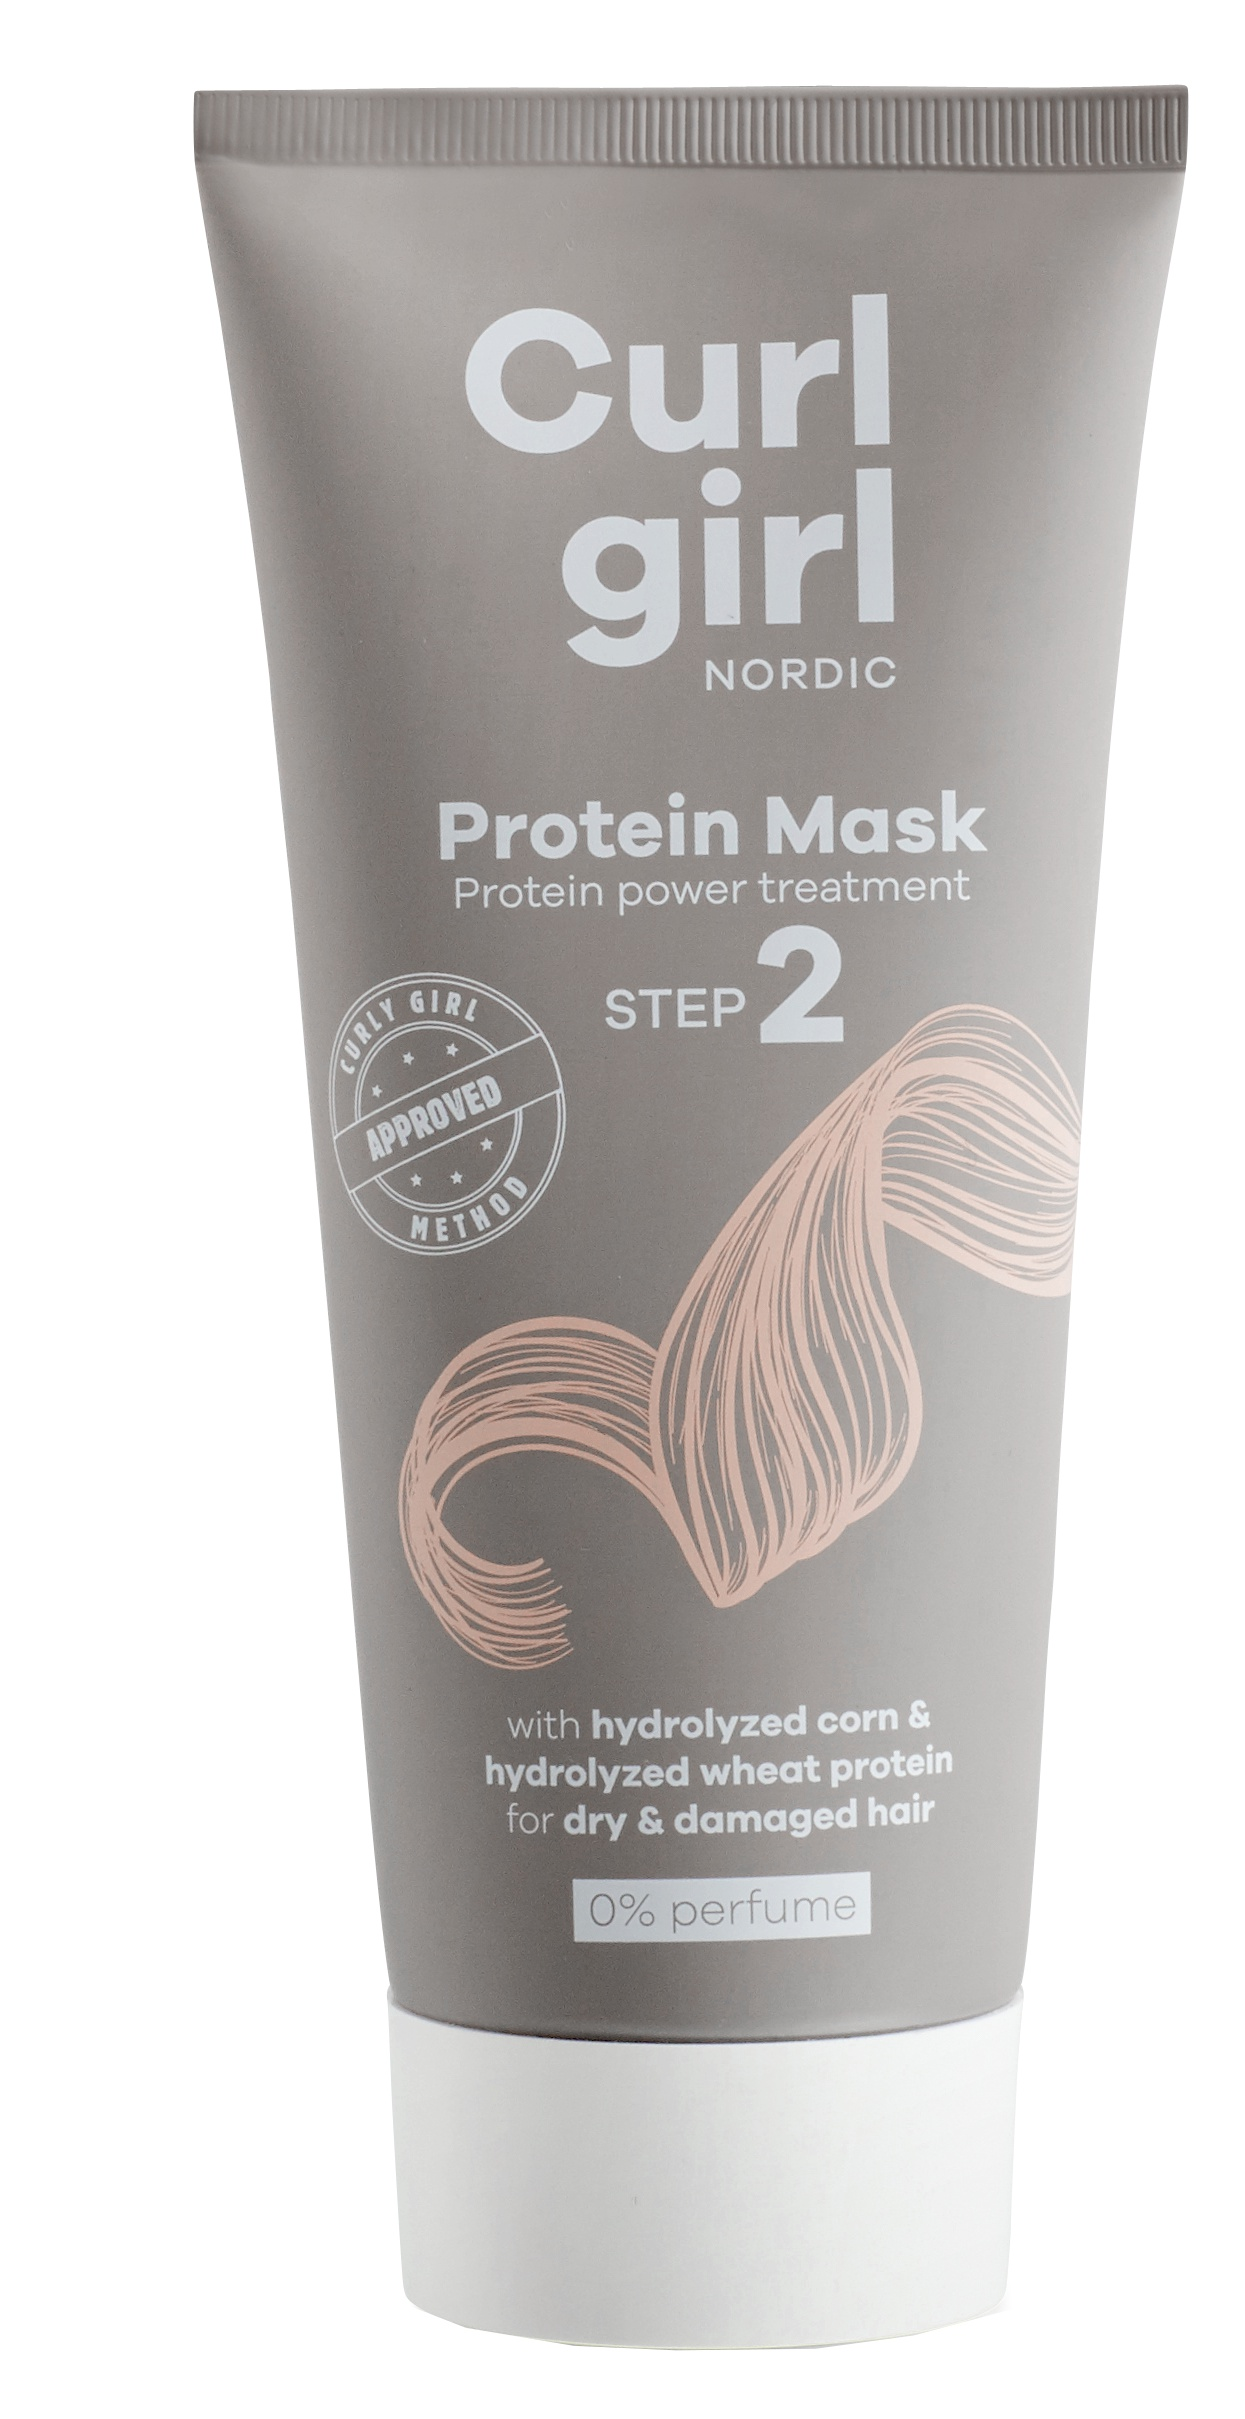 Curl girl nordic Protein Mask